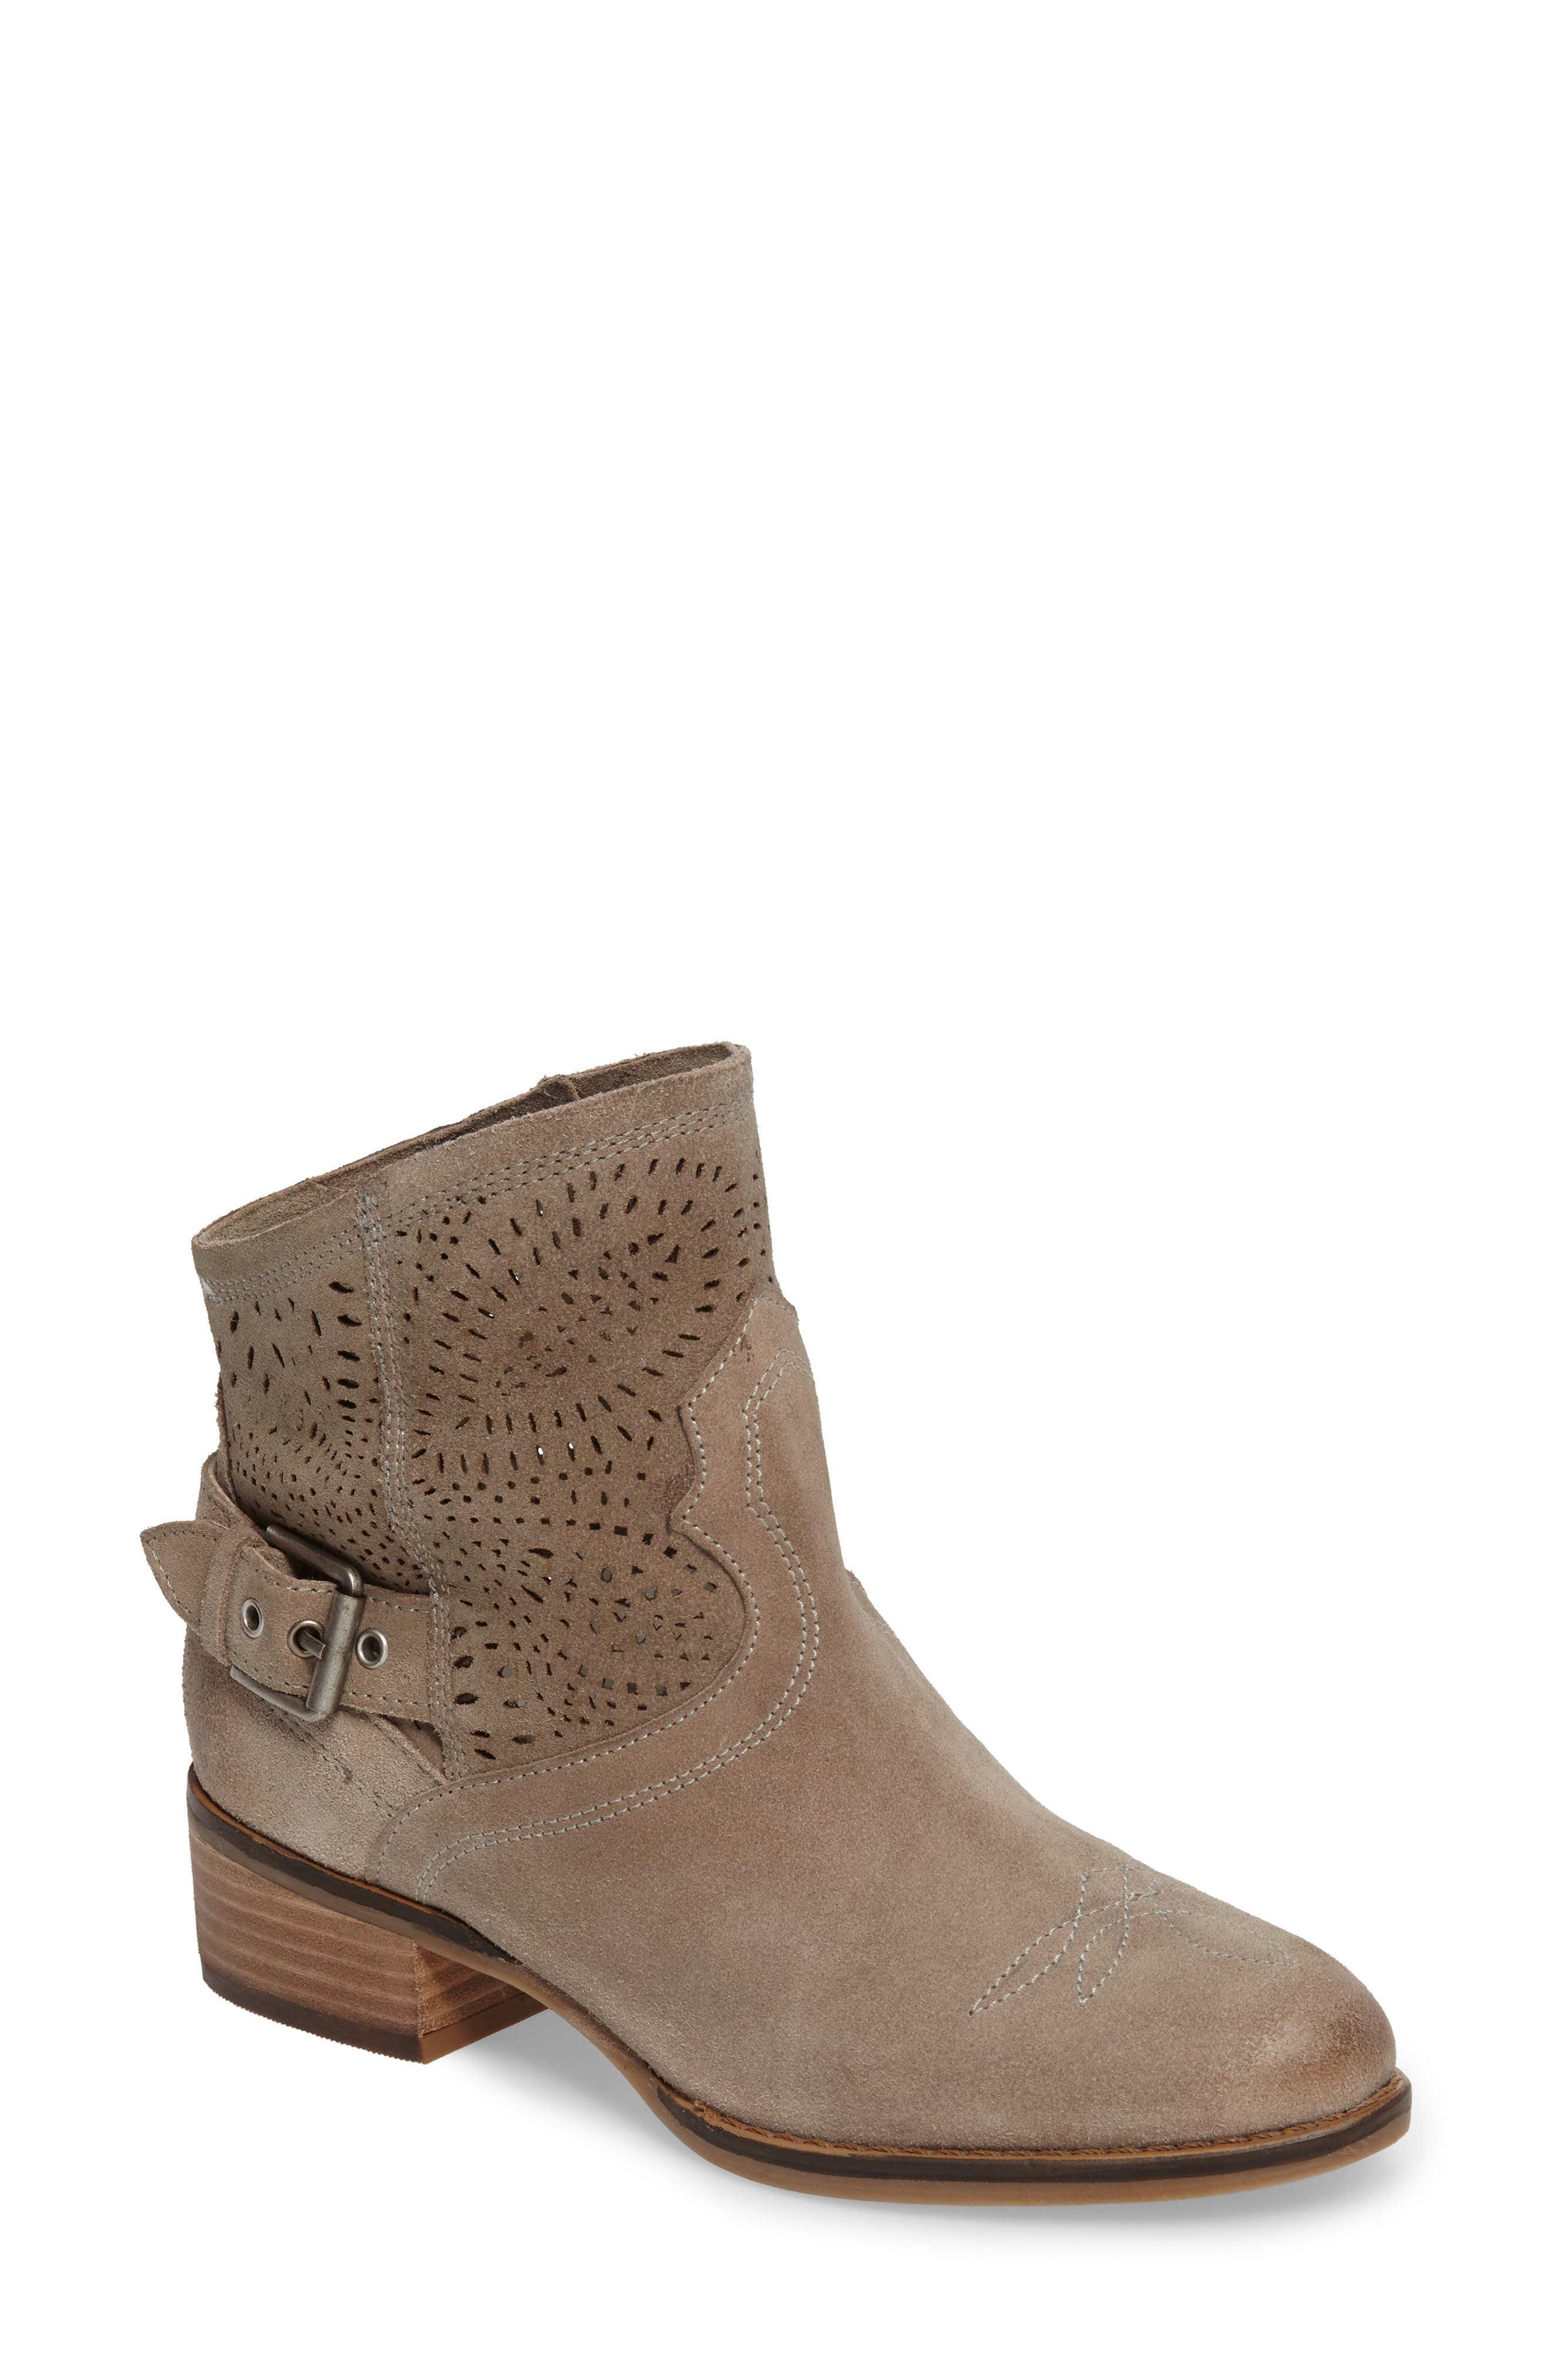 Zoey Perforated Bootie,                             Main thumbnail 3, color,